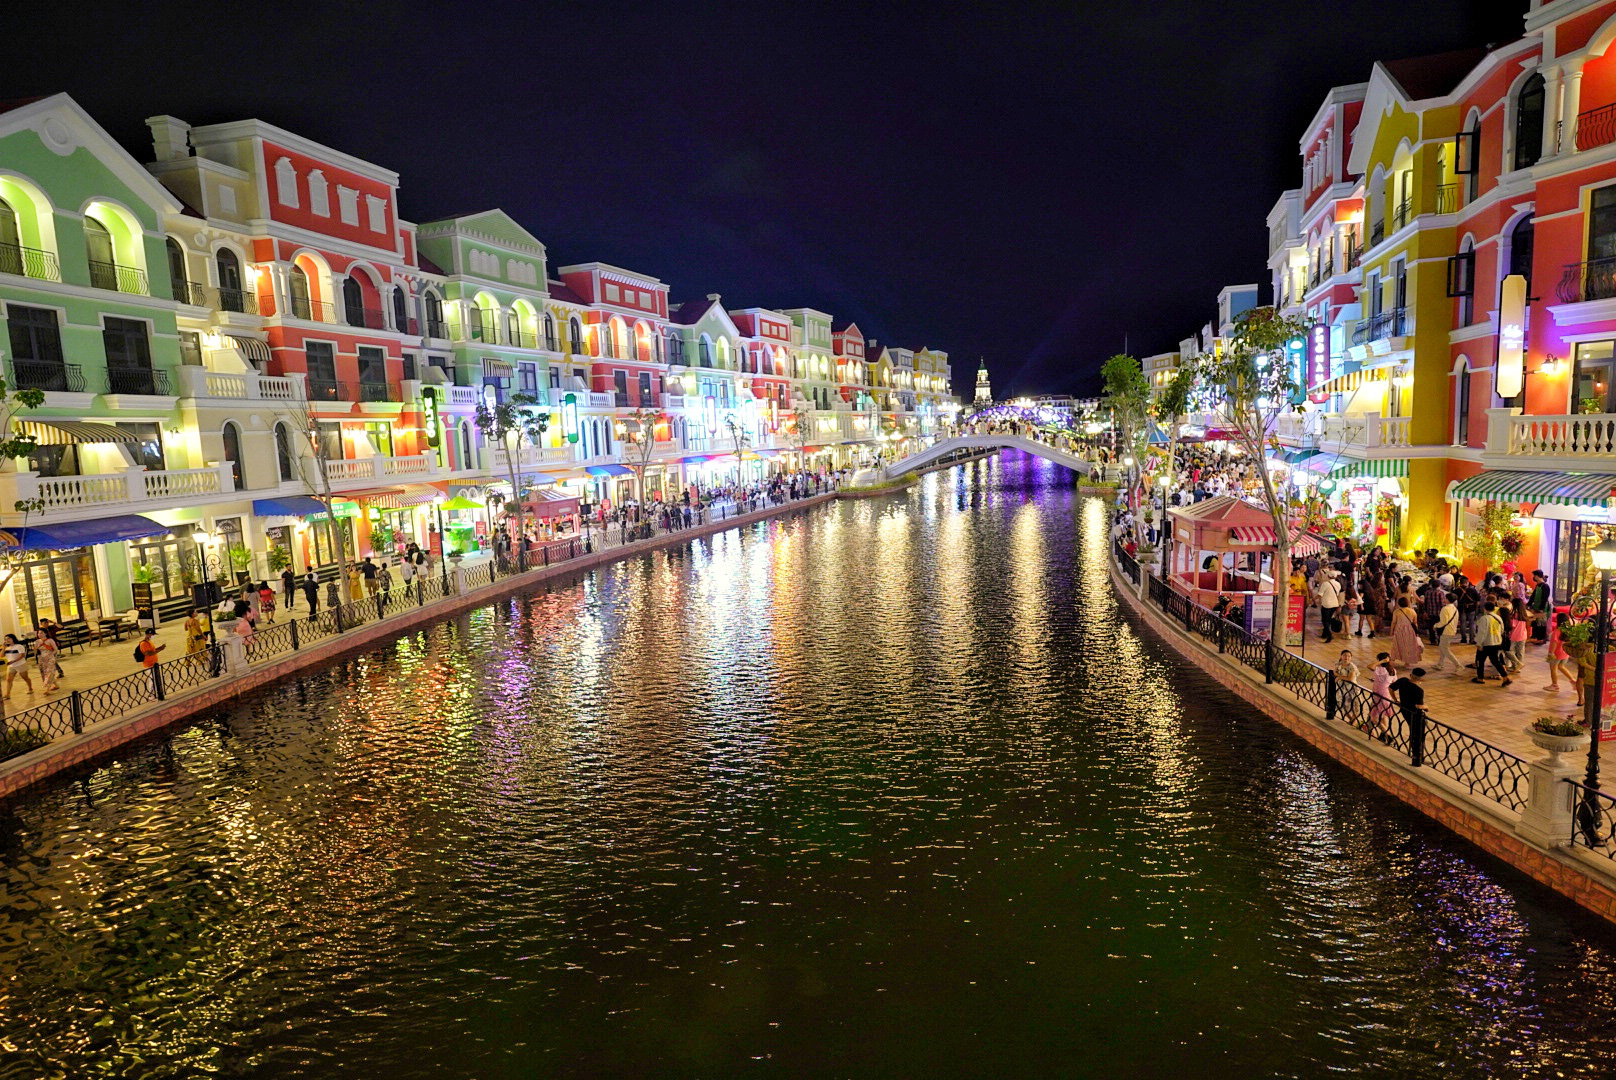 The replica of Venice's Grand Canal at Phu Quoc United Center. Photo: Hai Trieu / Tuoi Tre